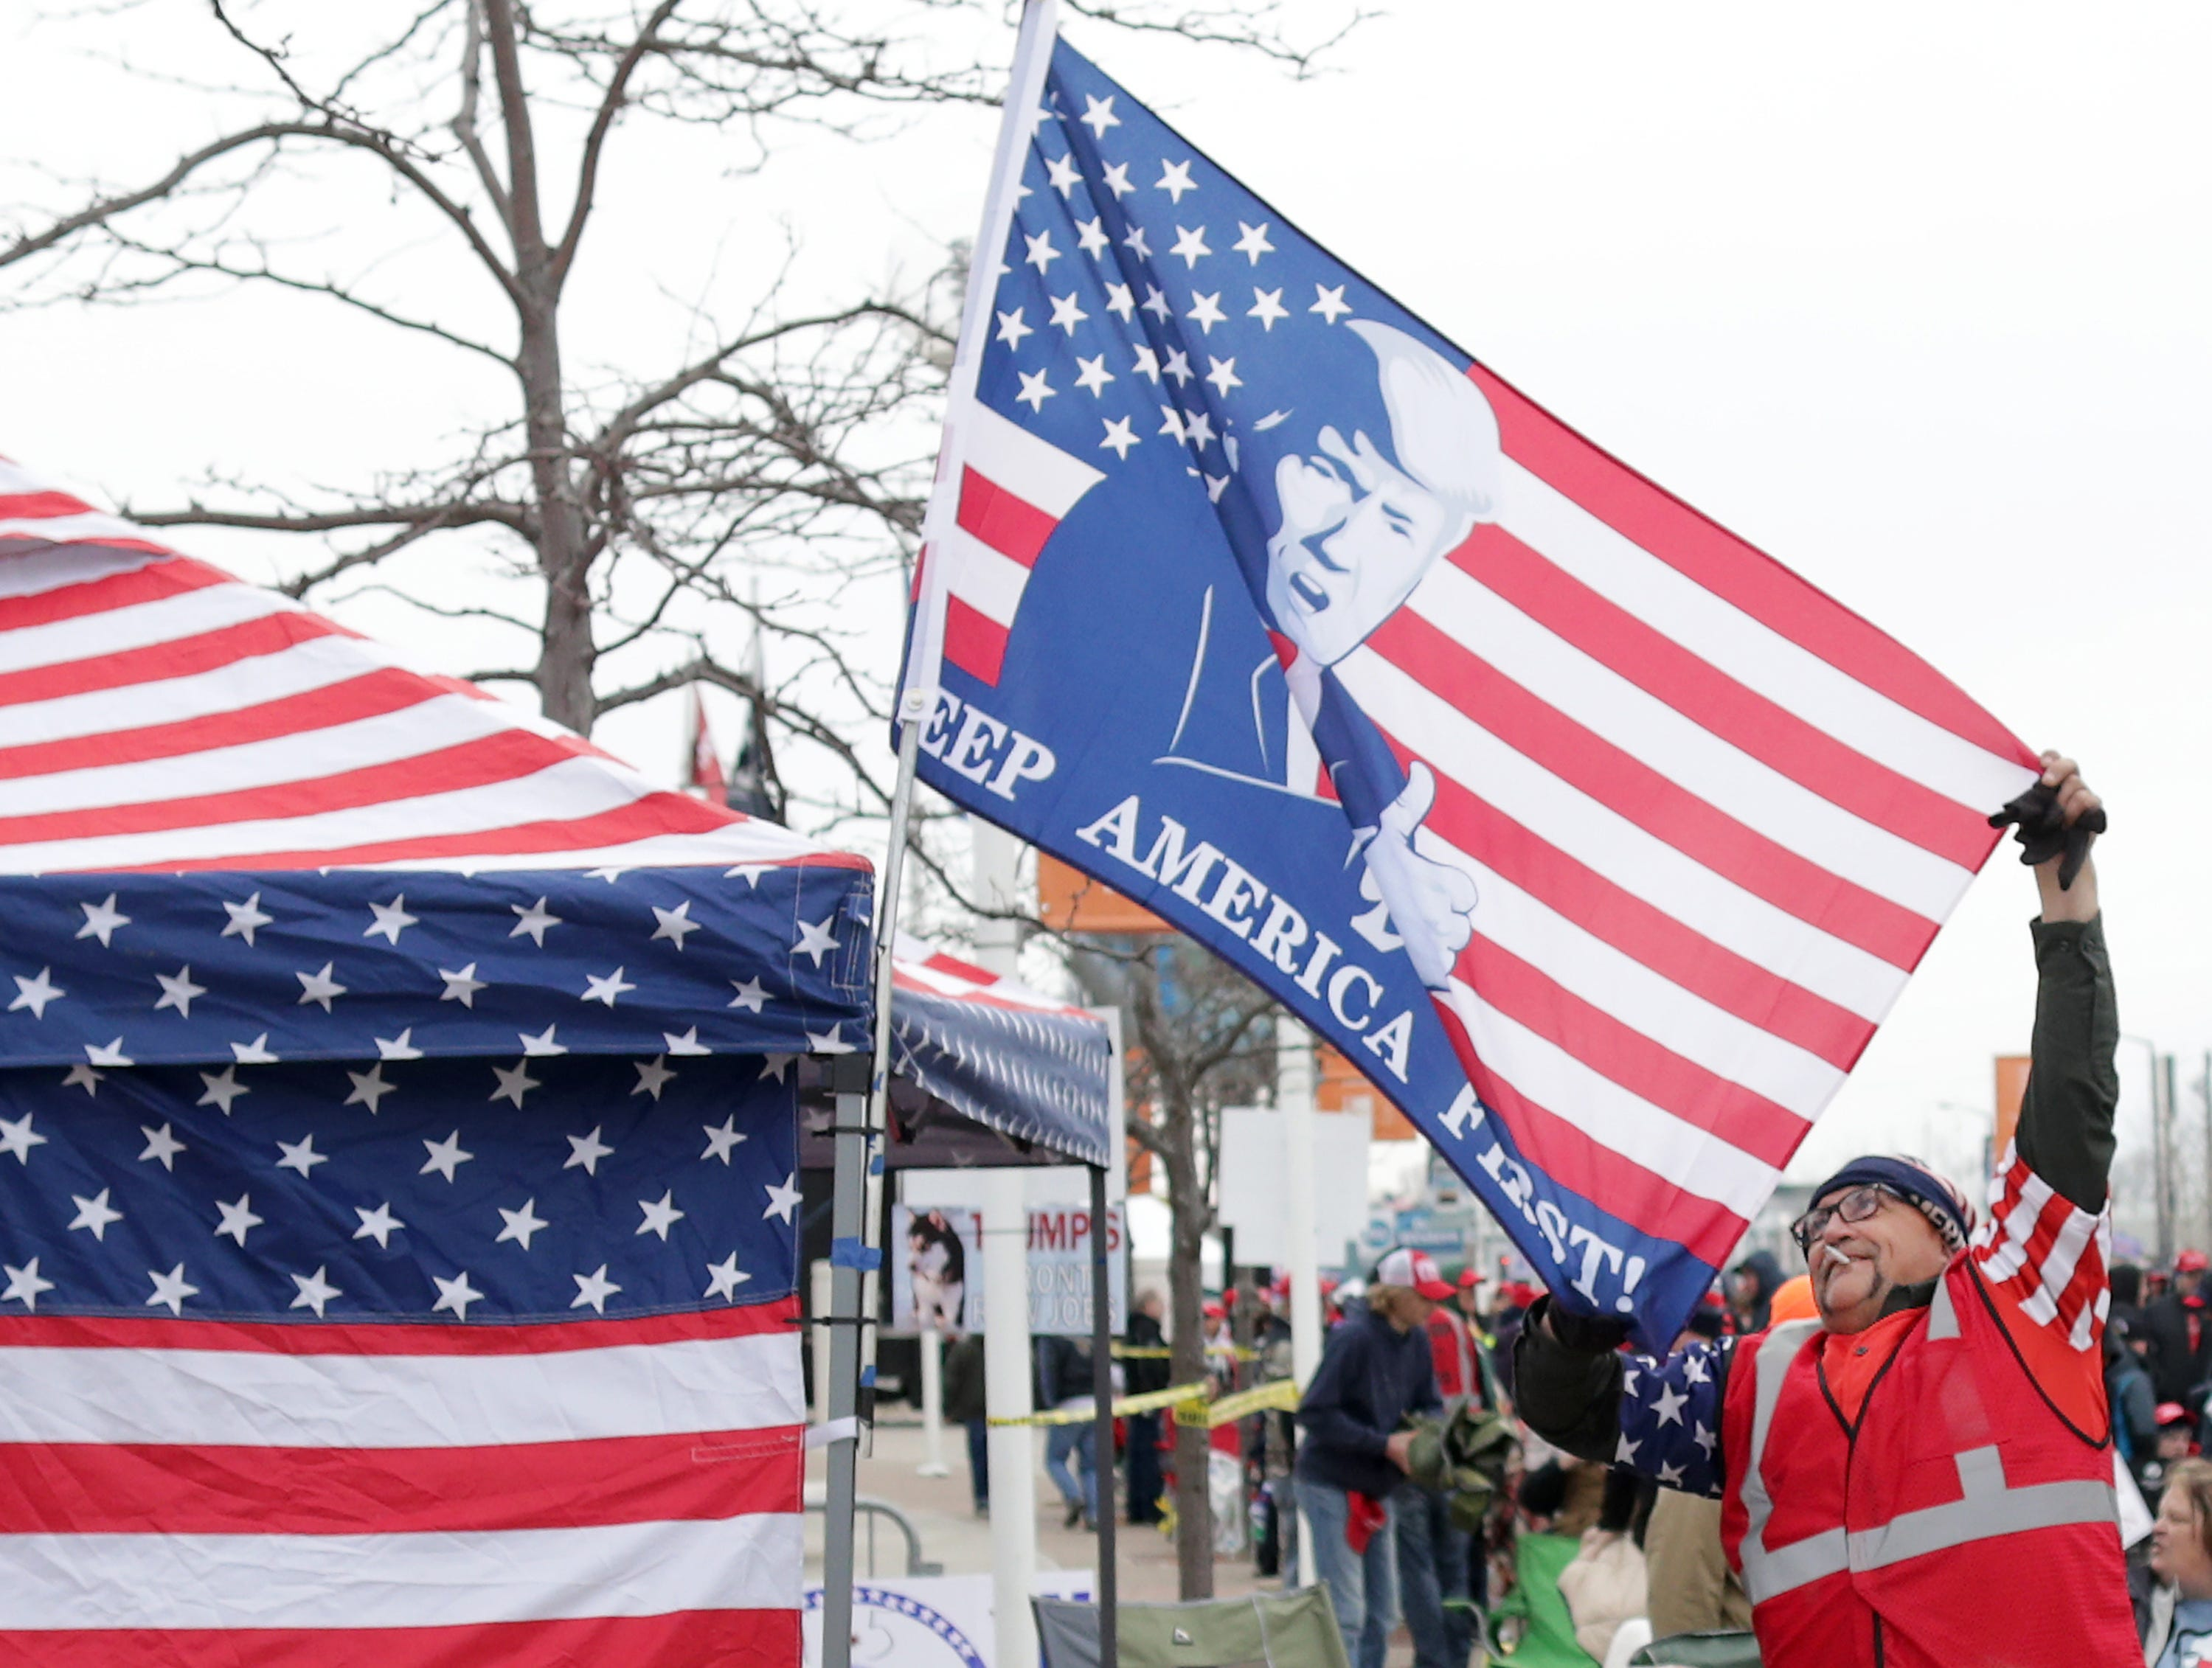 Randal Thom, Lakefield Minn., adjusts a flag while waiting in line before President Donald J. Trump's Make America Great Again Rally on Saturday, April 27, 2019, at the Resch Center in Green Bay, Wis. Randal is with a group called Trump's Front Row Joe's that waited in line overnight.